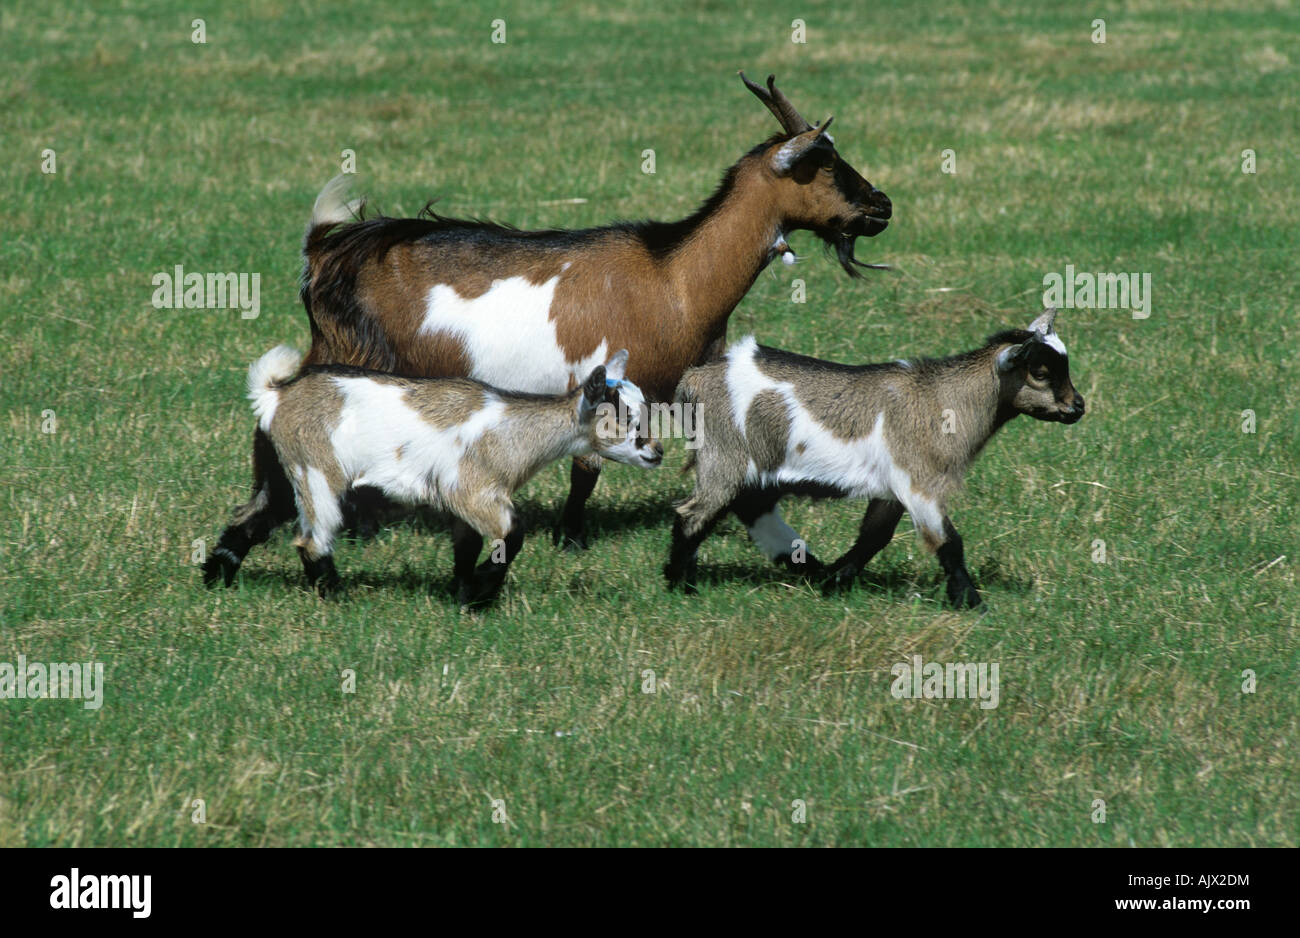 Pygmy goat nanny with two kids walking on grass Somerset - Stock Image